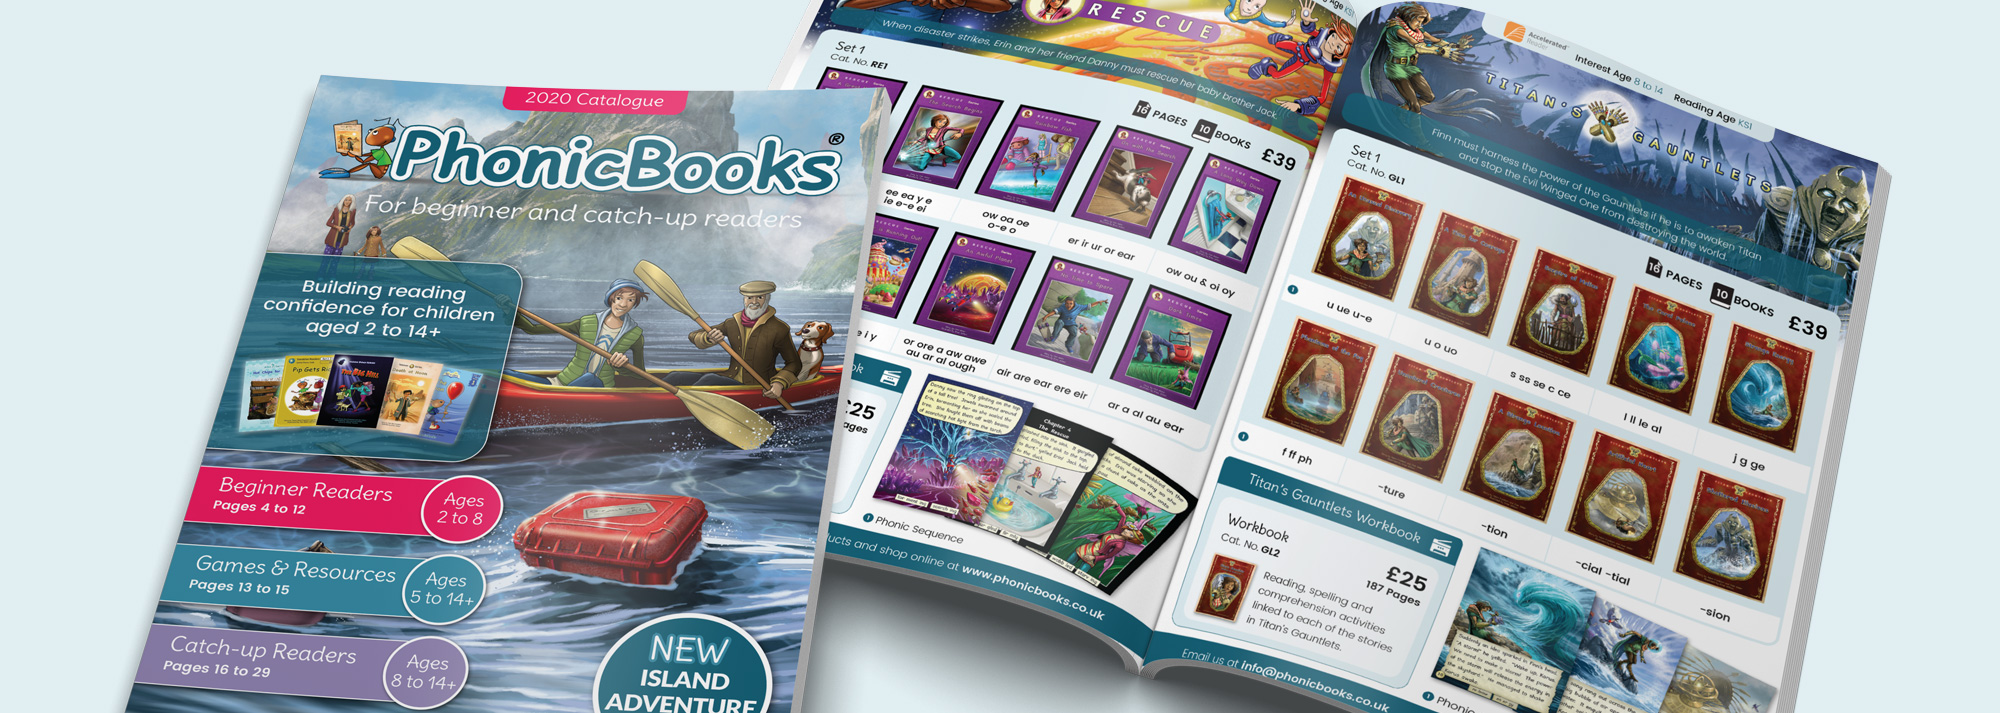 Phonic Books Catalogue